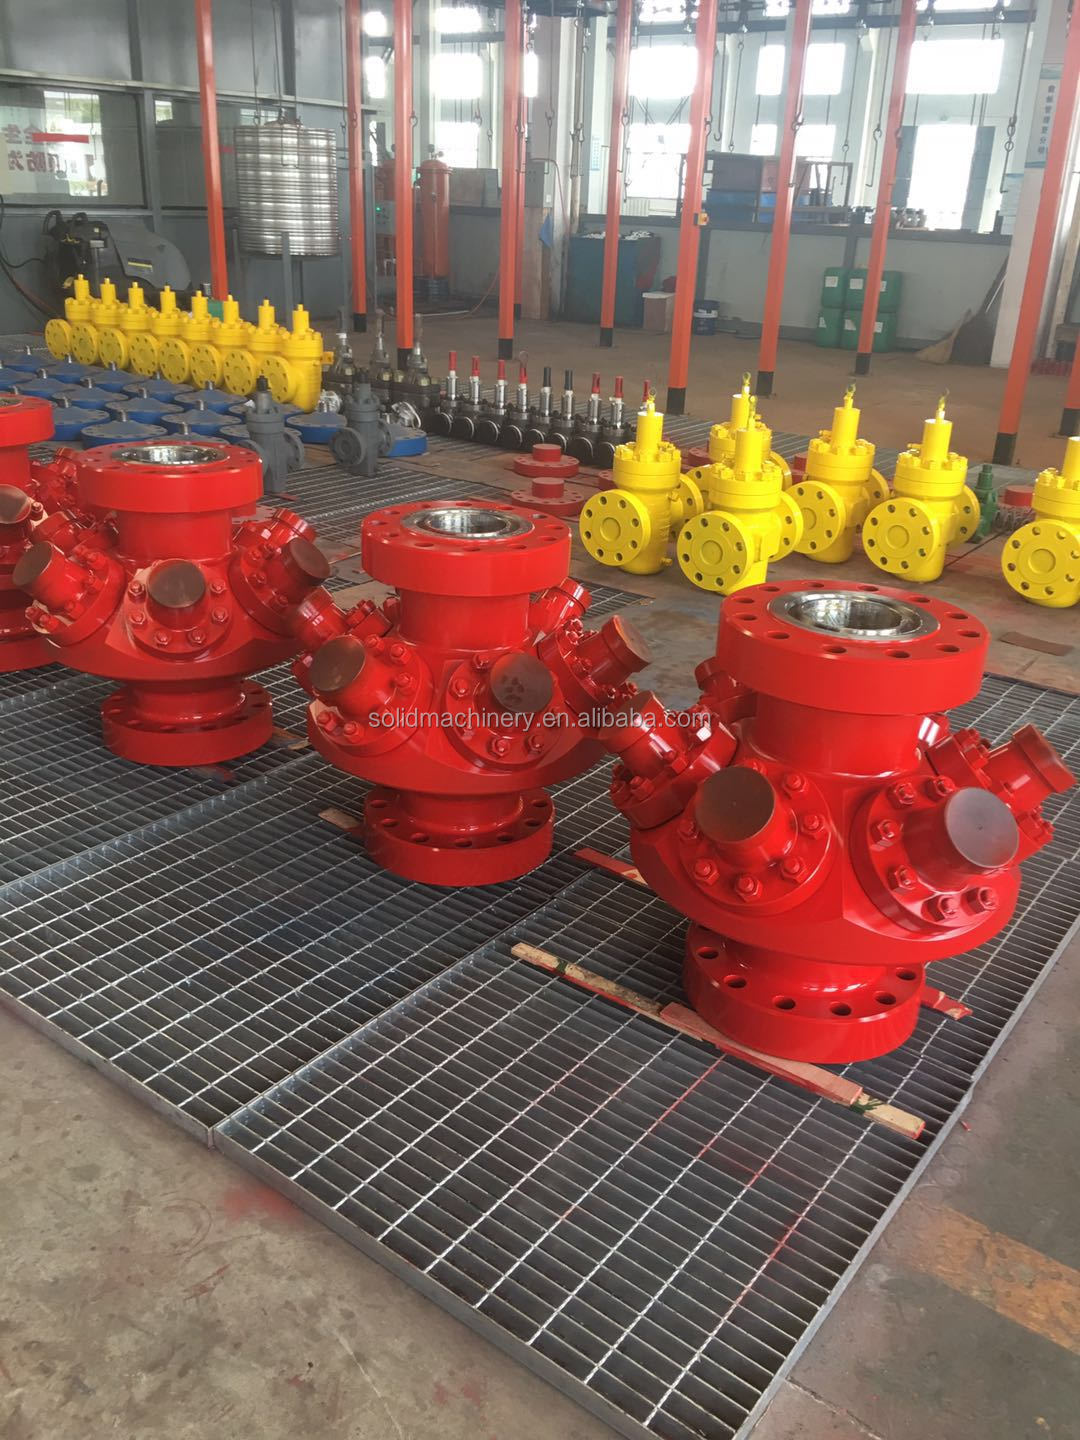 API 6A six outlets frac heads for fracturing work